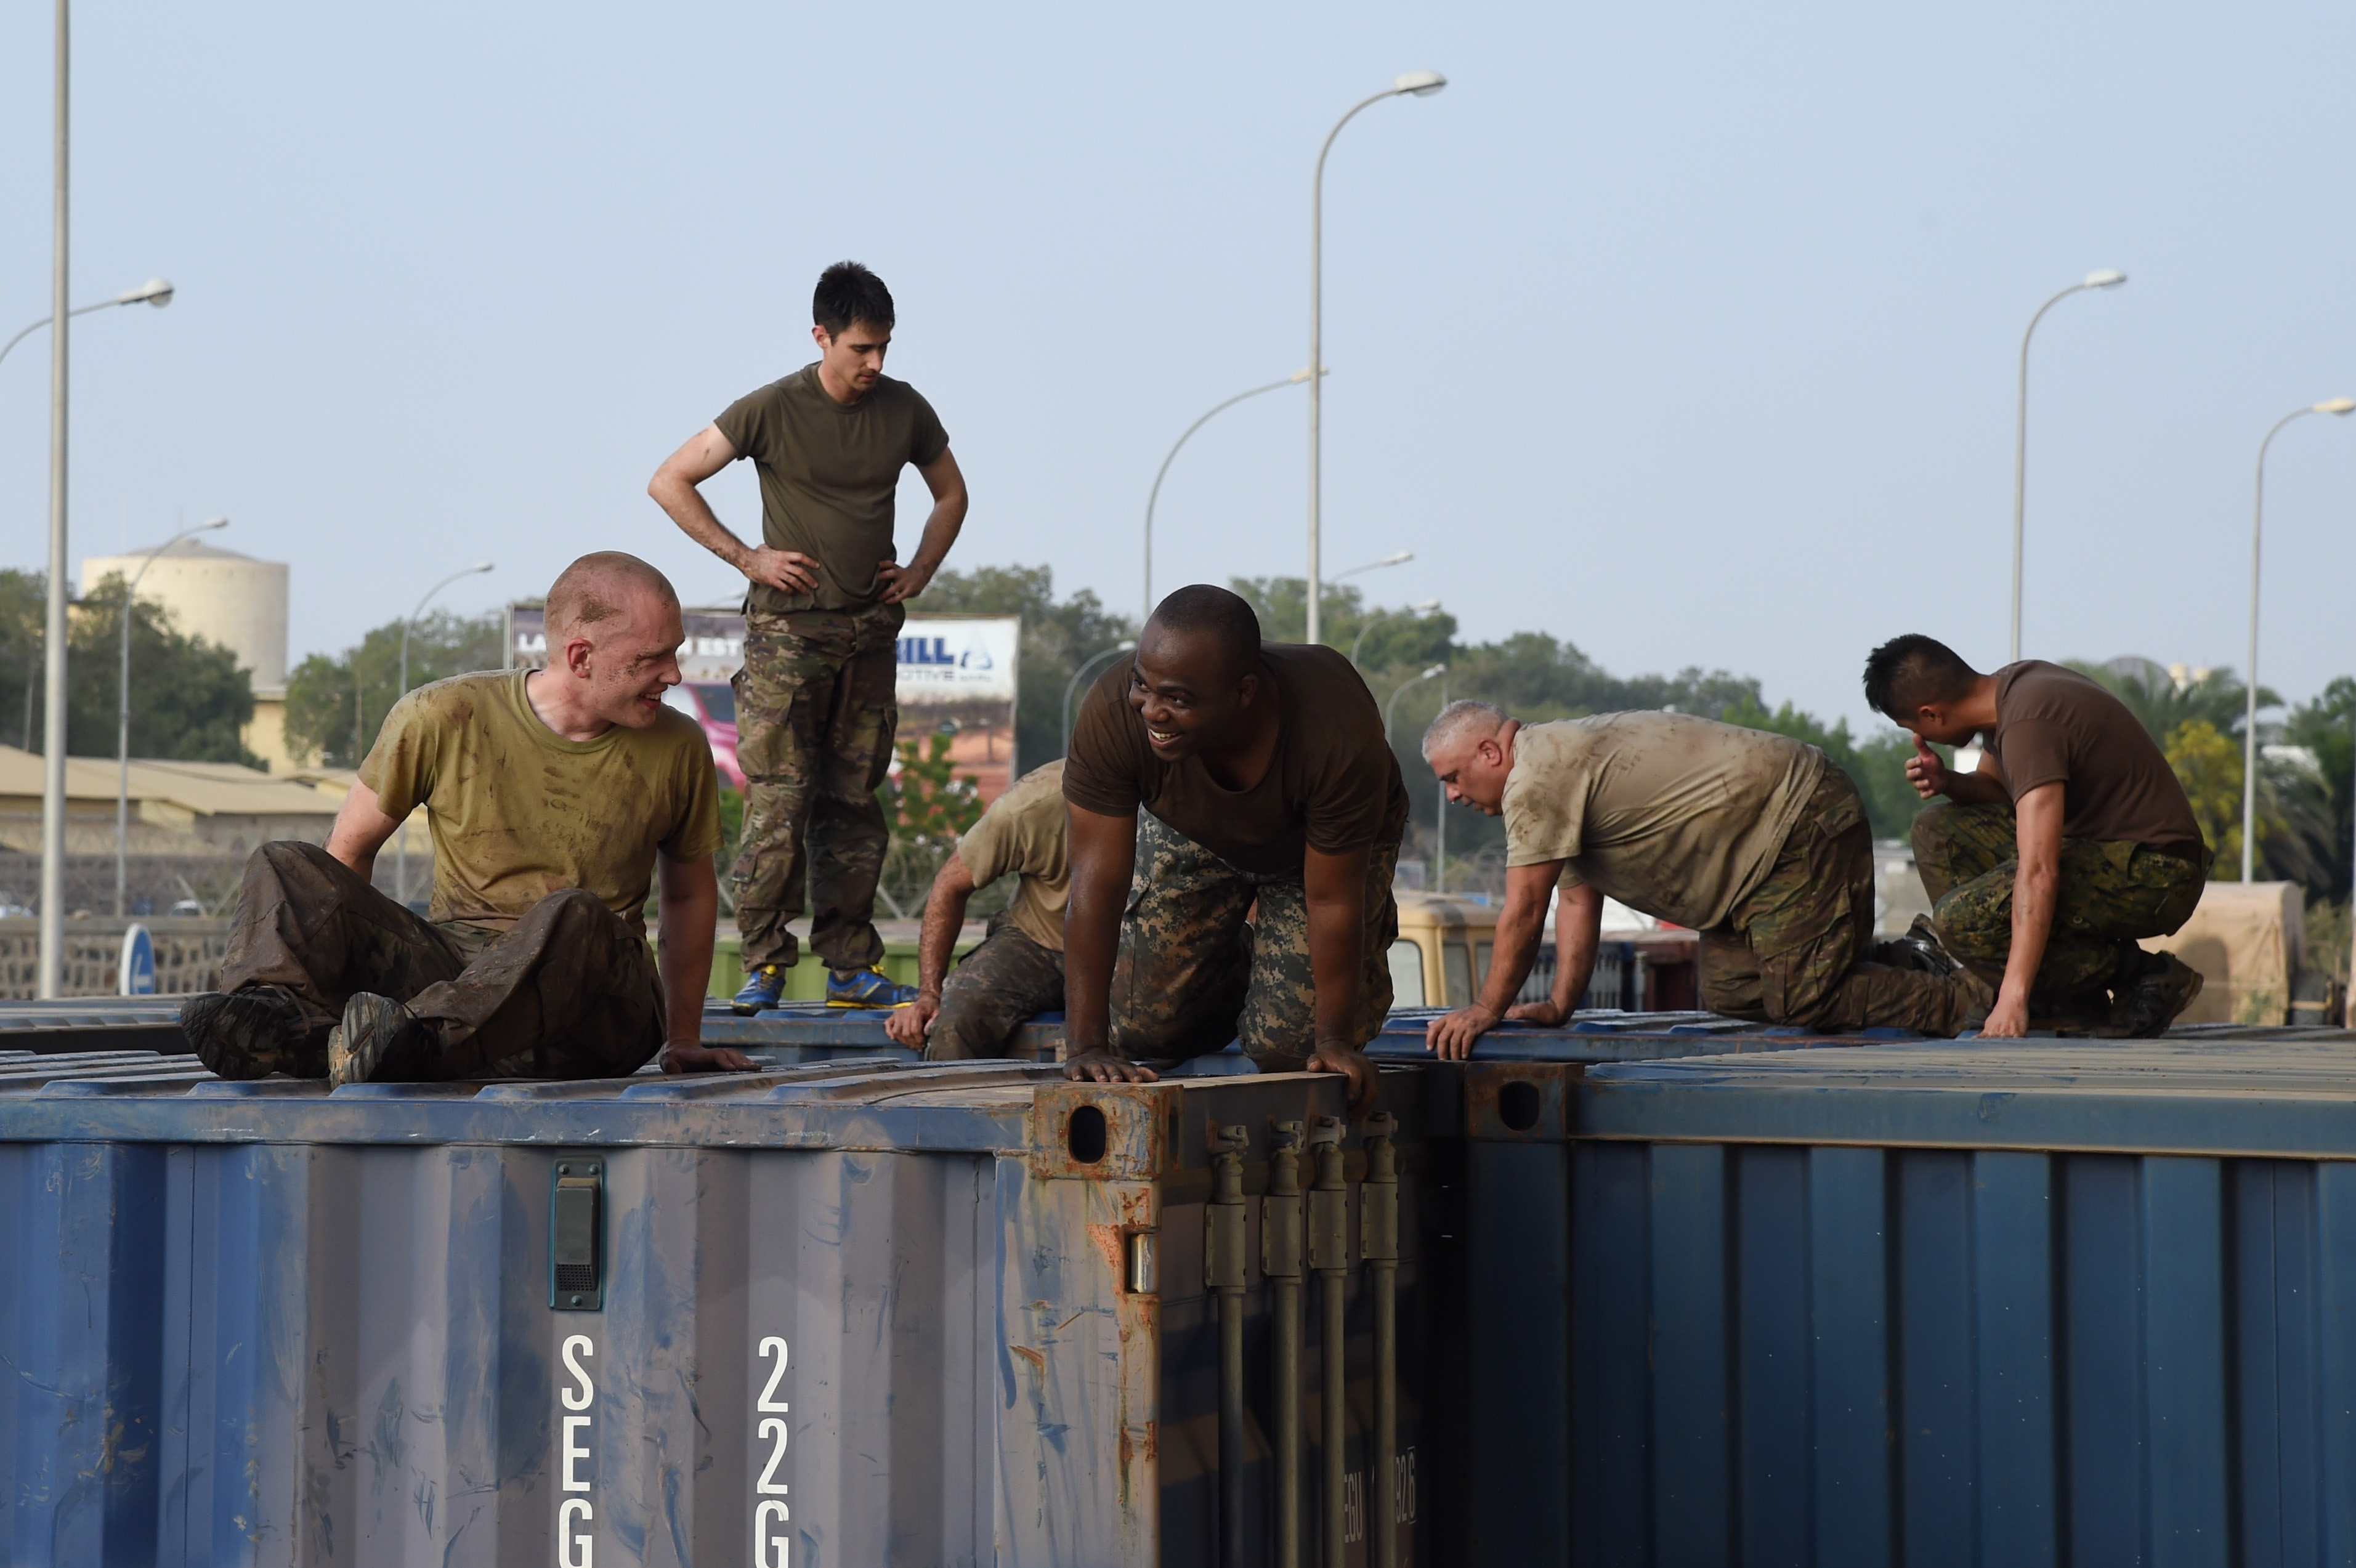 Service members from Combined Joint Task Force-Horn of Africa Civil Affairs climb over obstacles during a mud run hosted by the French military, Nov. 6, 2016, in Djibouti, Djibouti. The event allowed coalition forces from French, Japanese, and American teams to interact and build camaraderie while navigating a five kilometer course. The French 5th Marine Regiment team took first place. (U.S. Air Force photo by Staff Sgt. Penny Snoozy)